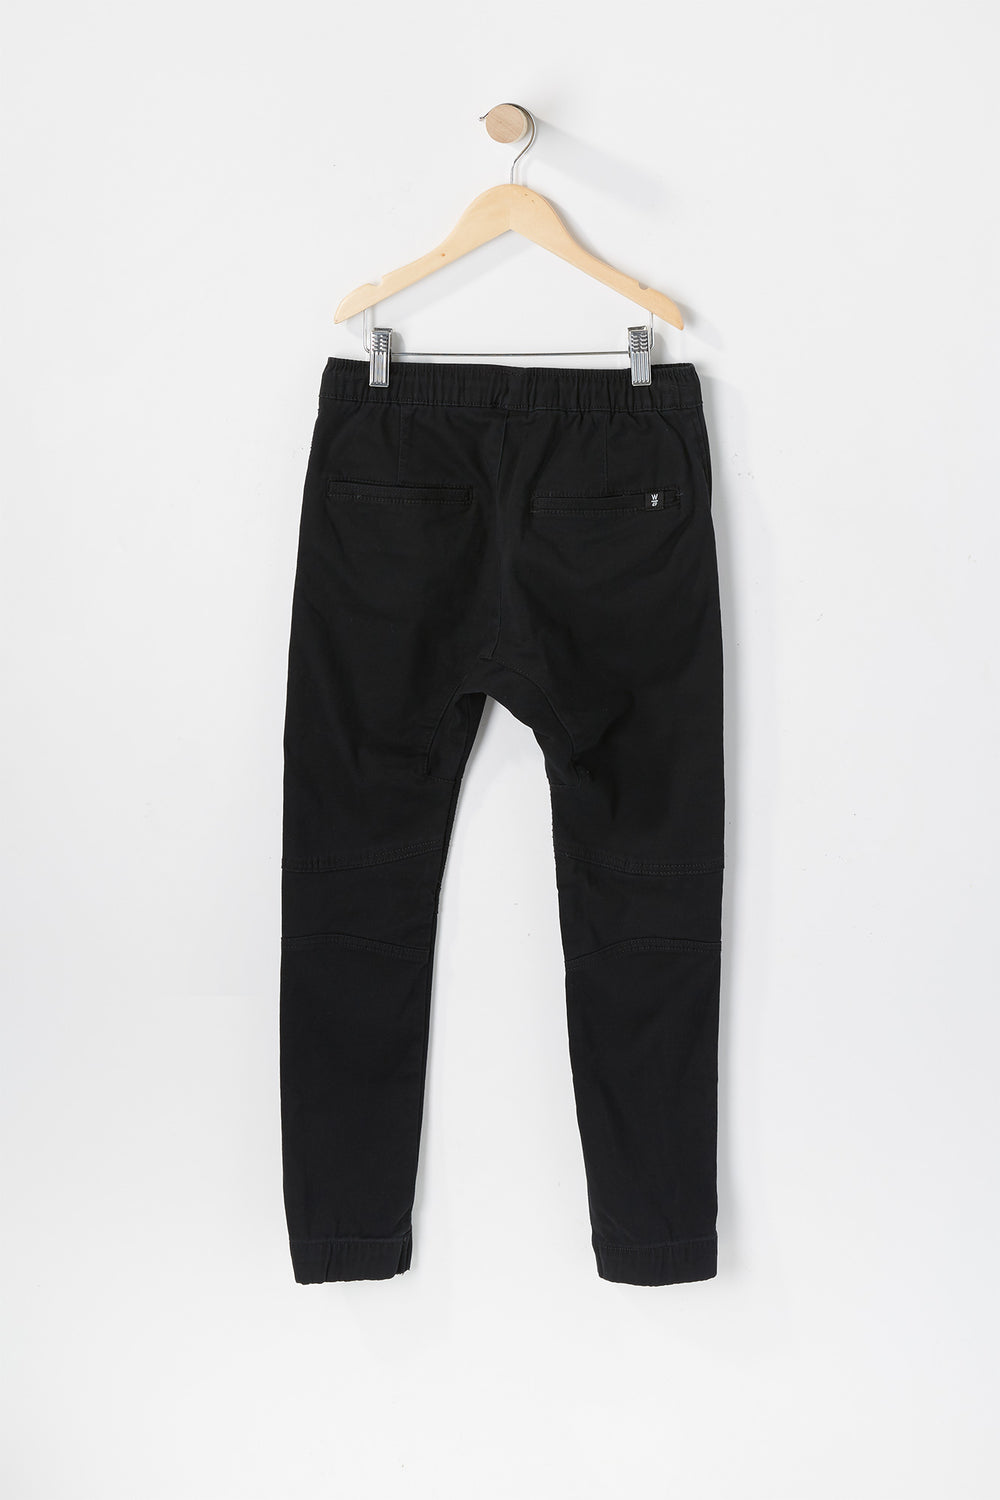 West49 Youth Solid Twill Moto Jogger Black